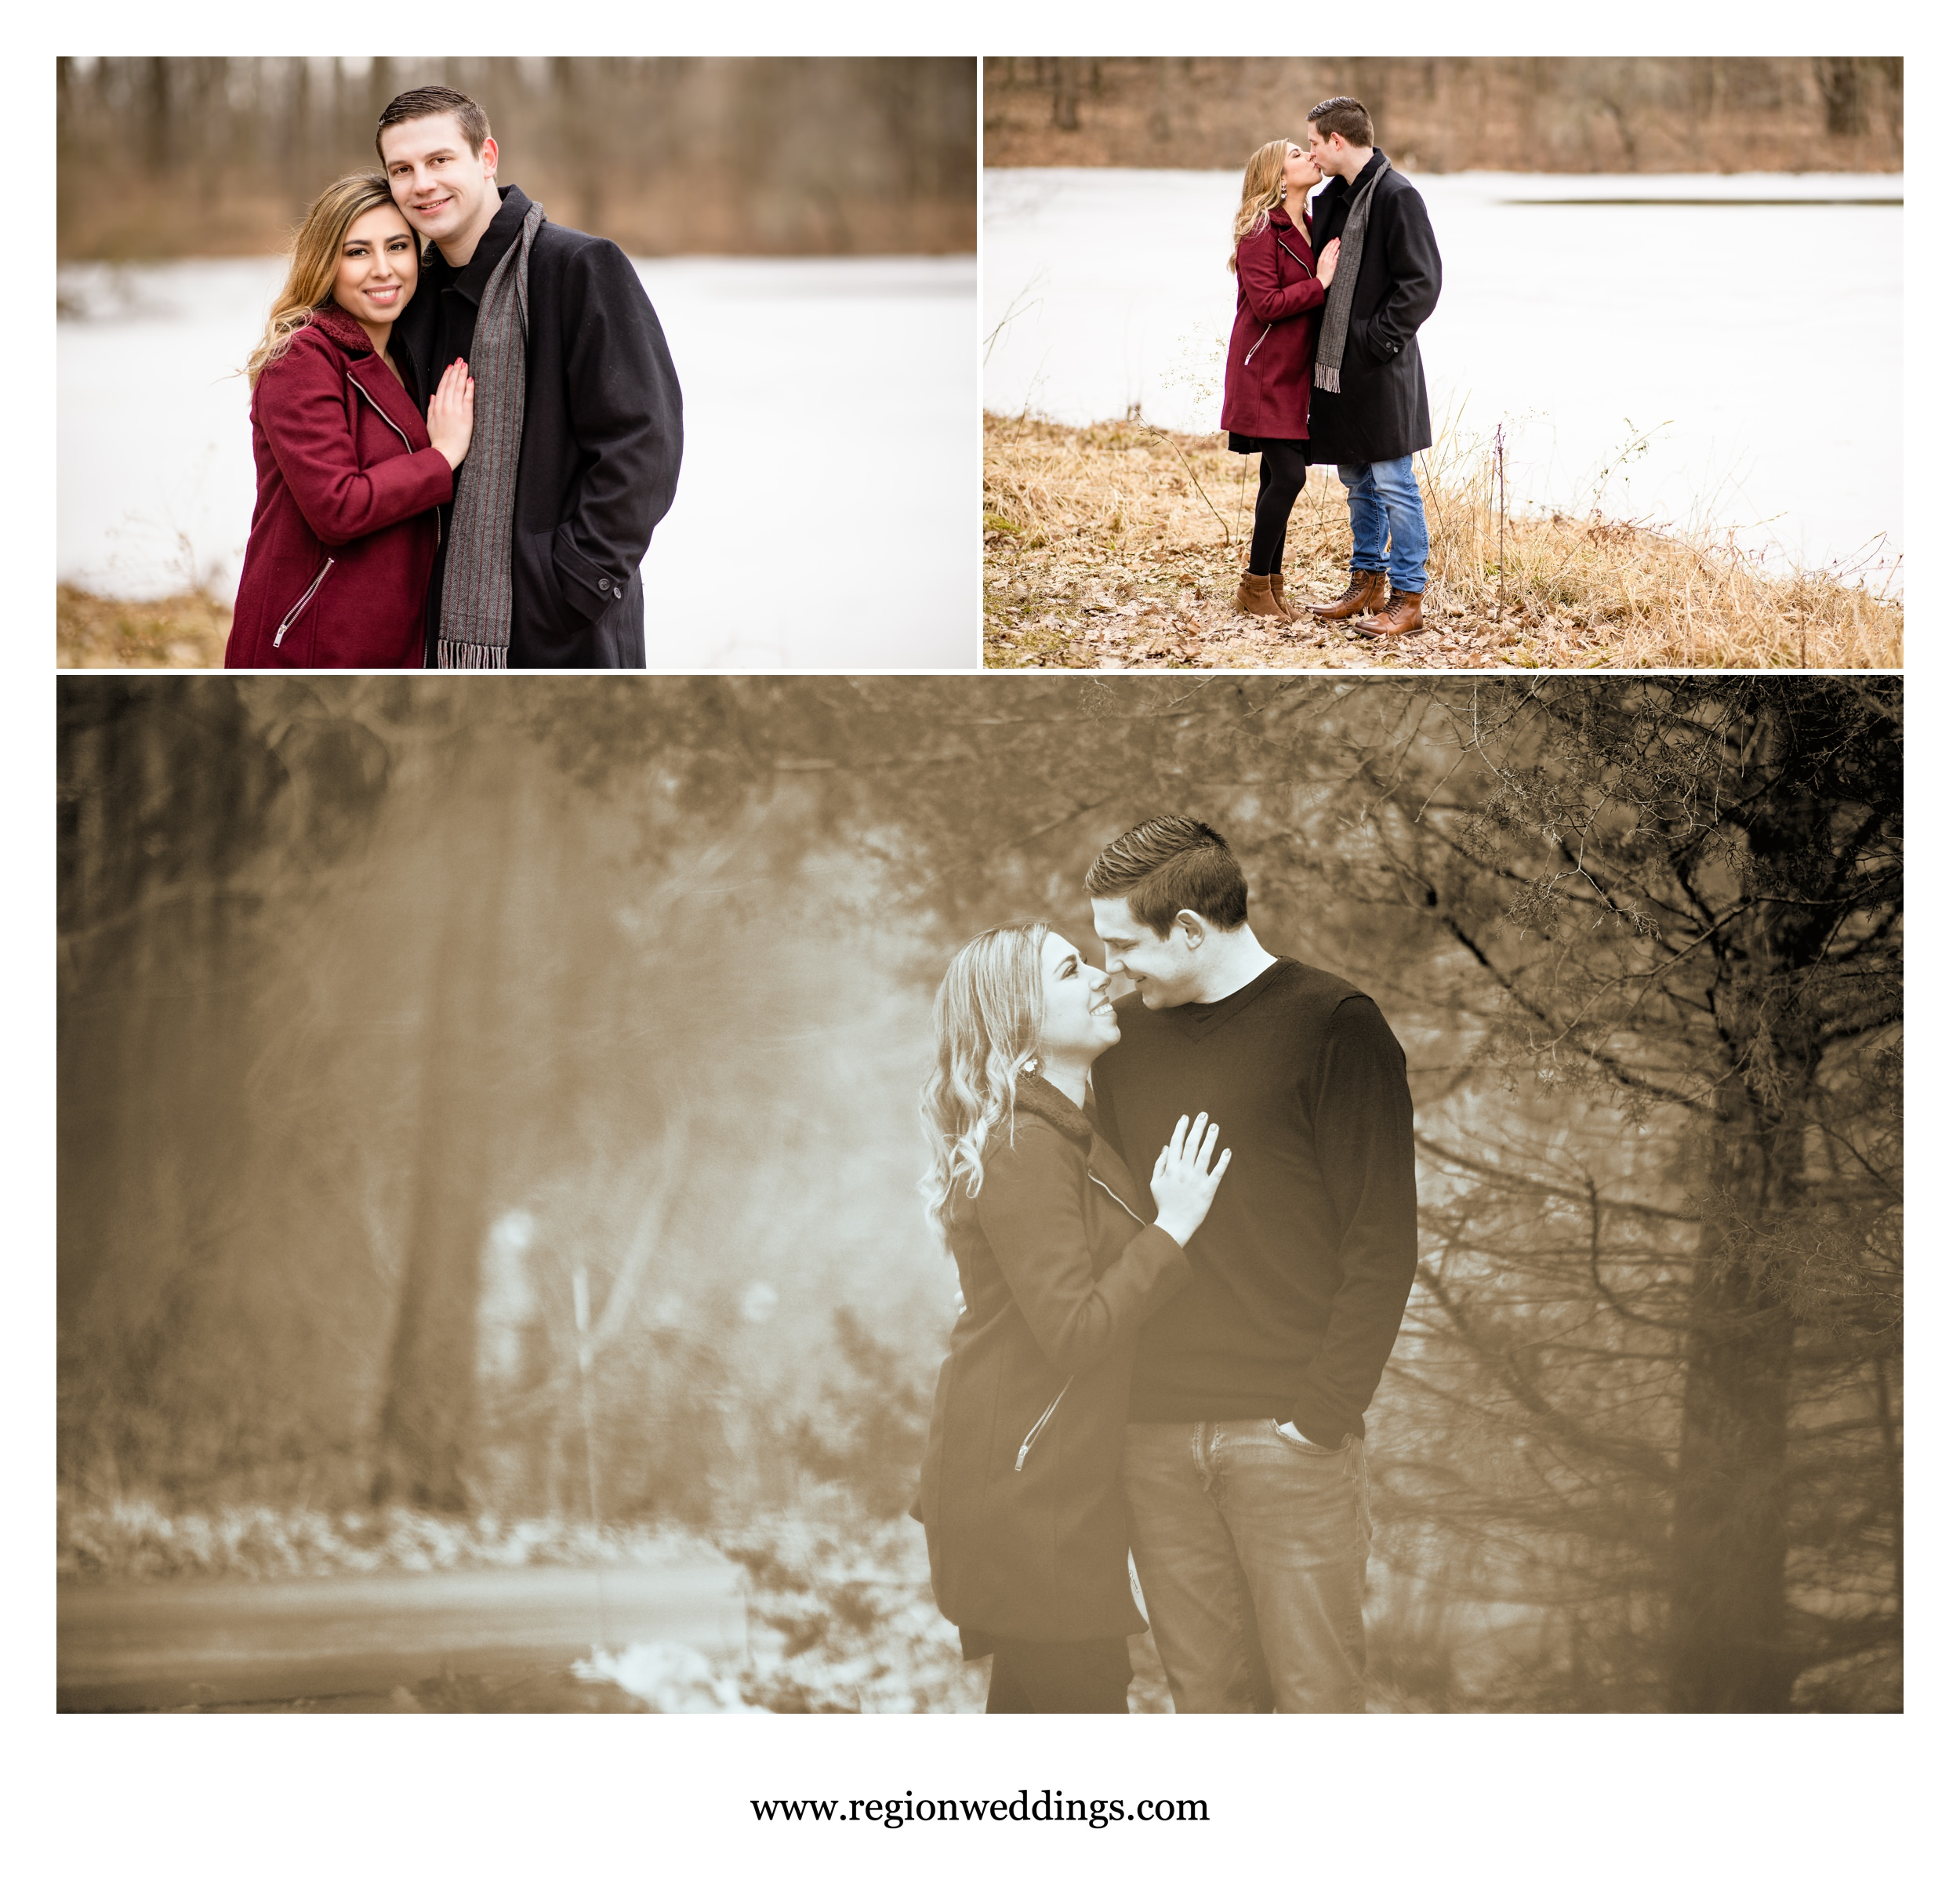 Romantic engagement photos taken in winter.